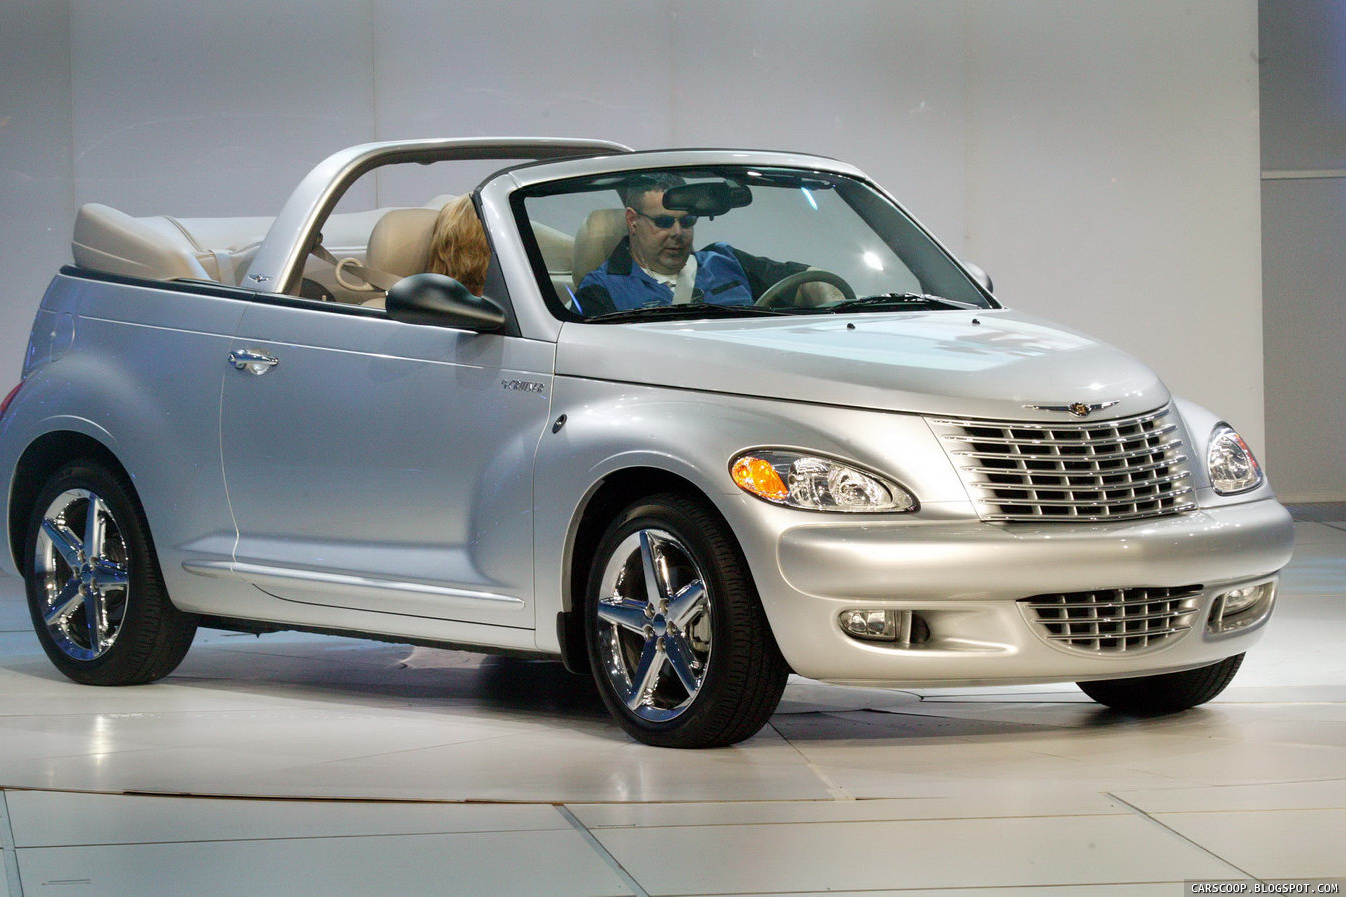 chrysler bids farewell to iconic pt cruiser last model rolls off assembly line in mexico. Black Bedroom Furniture Sets. Home Design Ideas